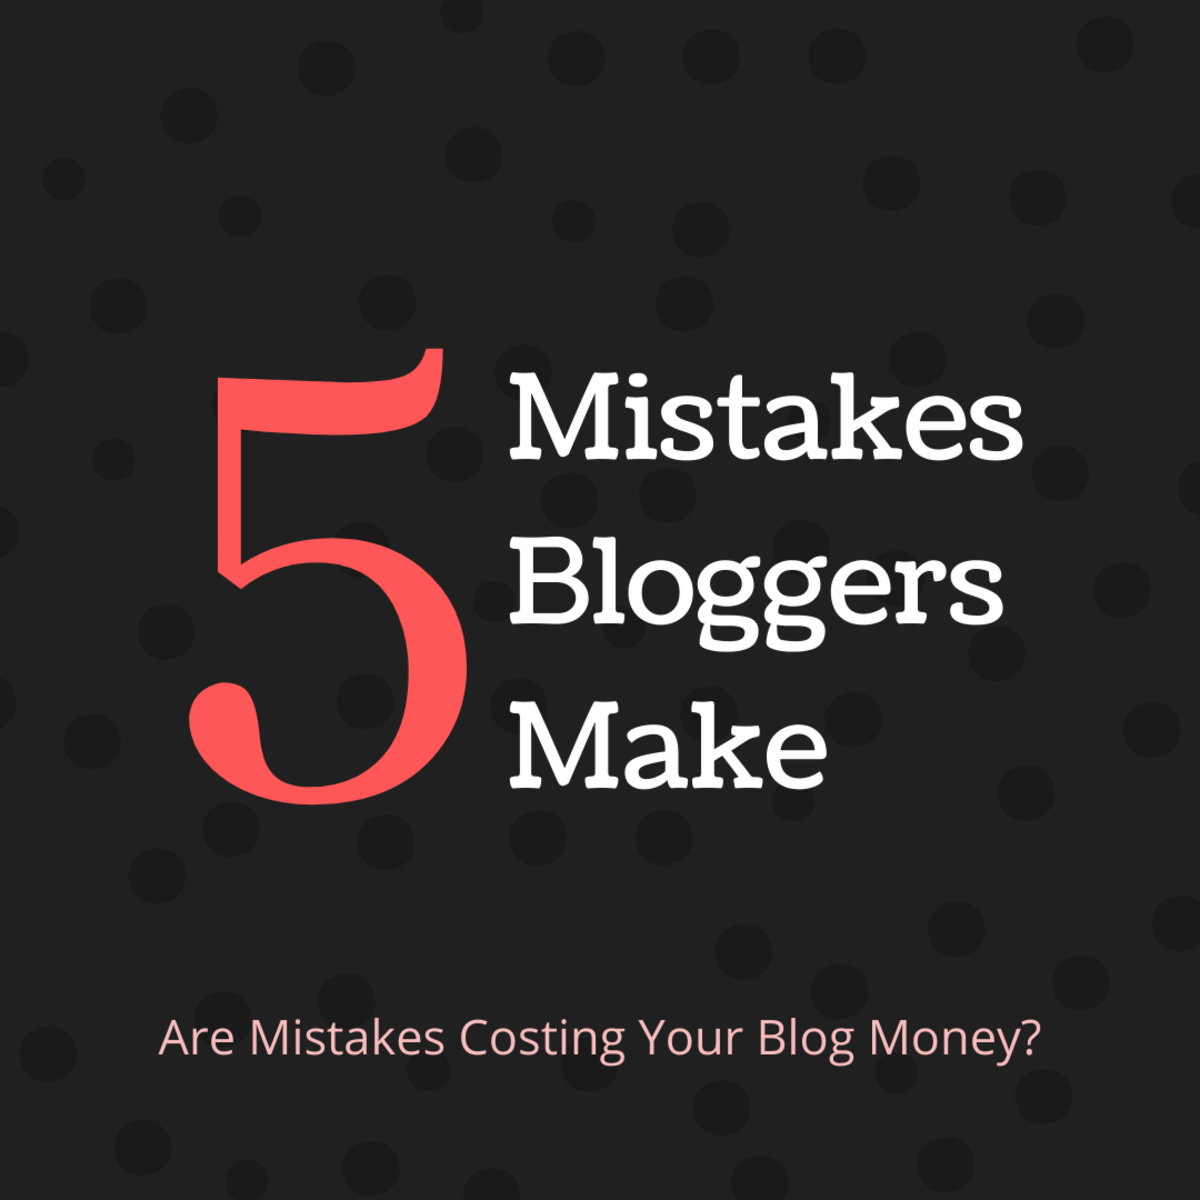 5 Blogging Mistakes That Prevent Your Blog From Making Money